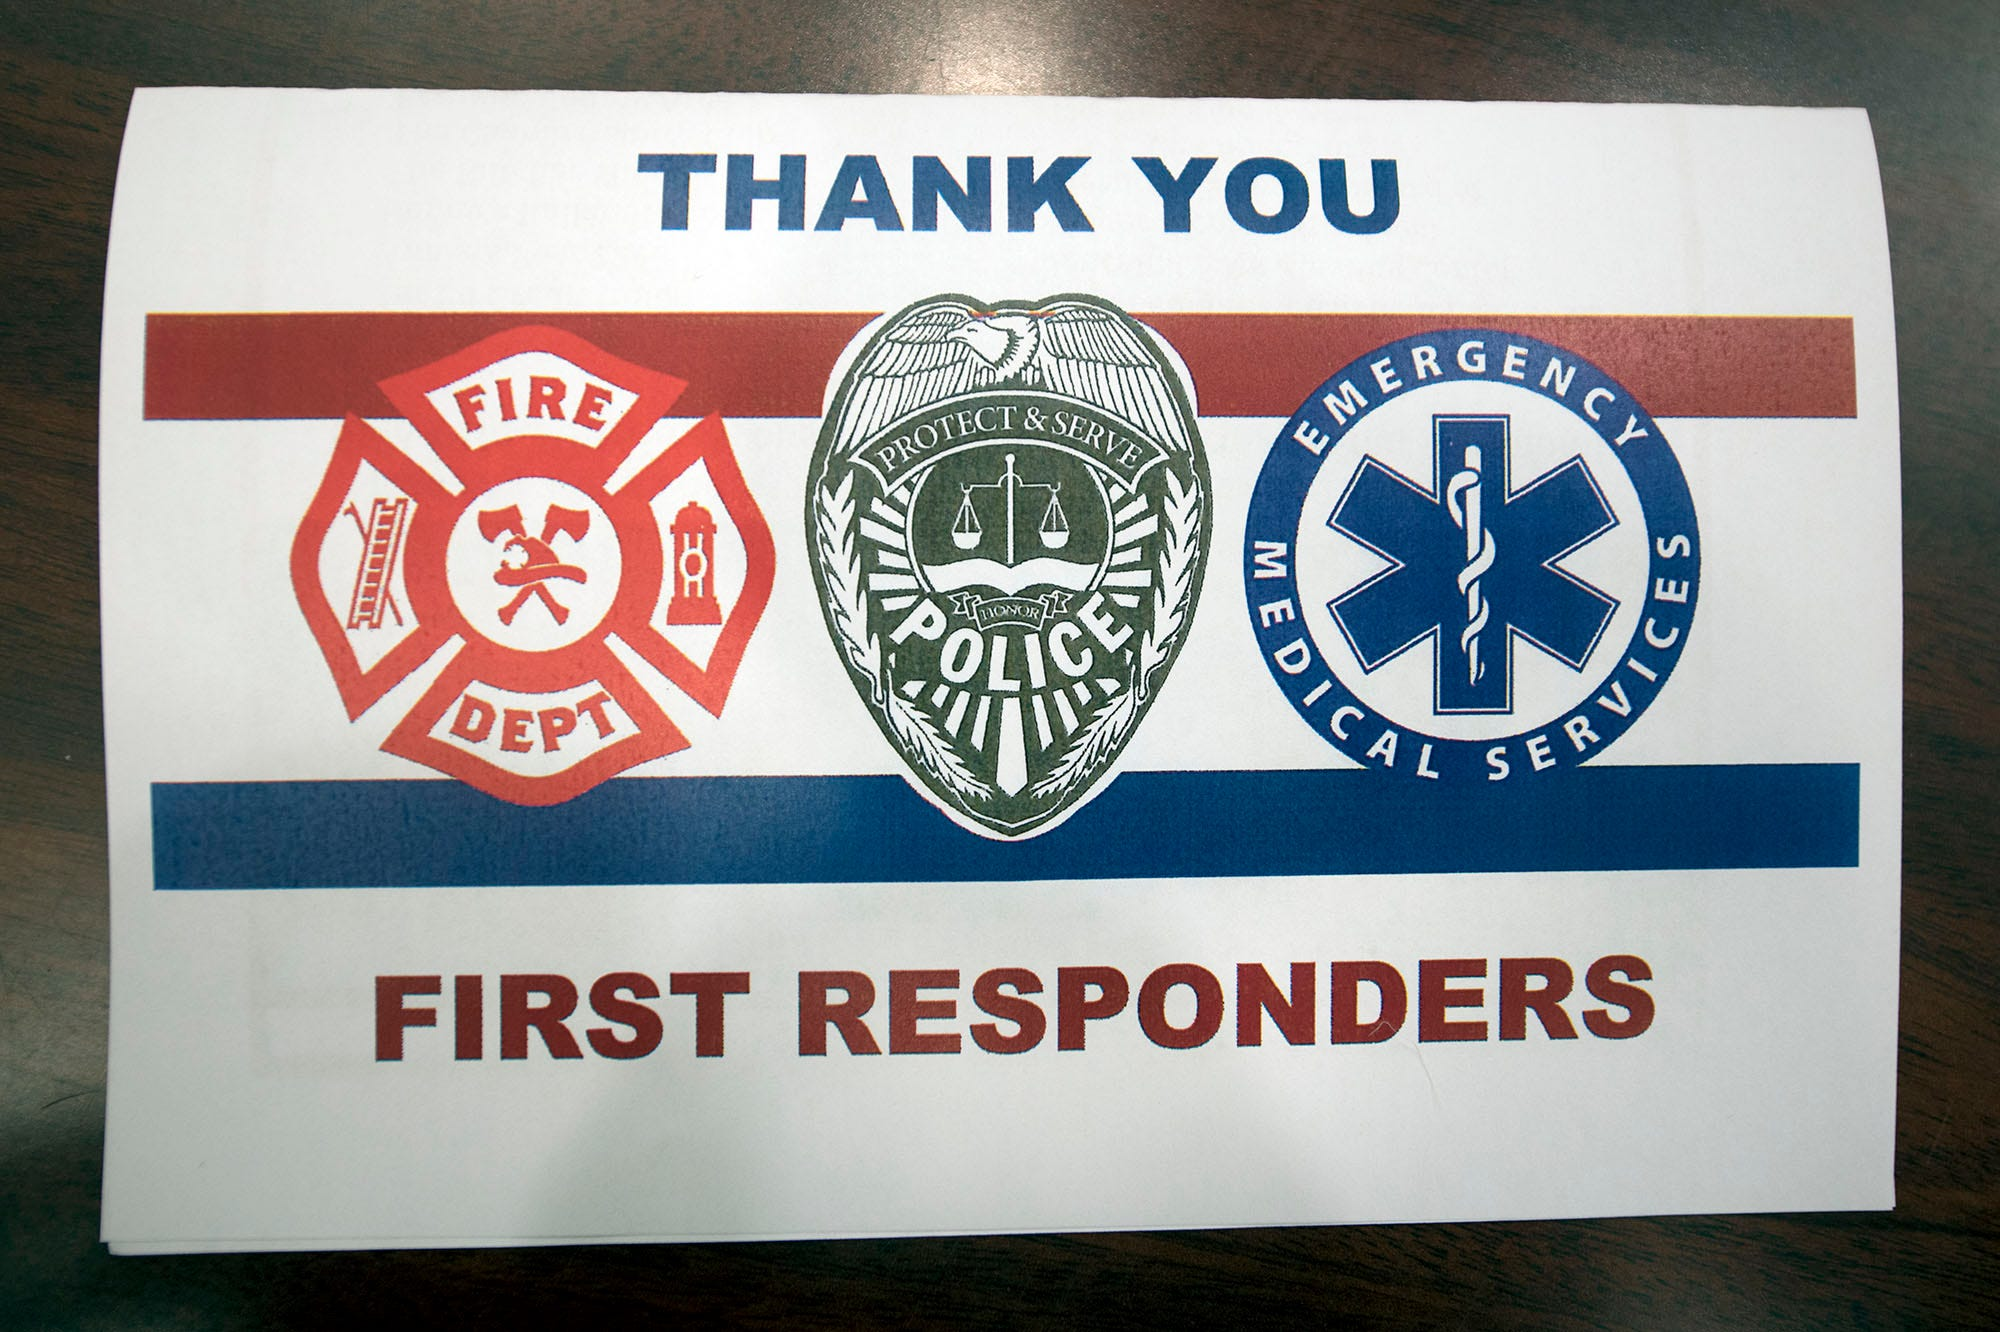 The 11/30 Network is hosting its annual First Responders Appreciation Day on Friday, December 7, 2018. The steering committee visited the Franklin County Sheriff's office and over 35 other first responder stations to deliver care packages.